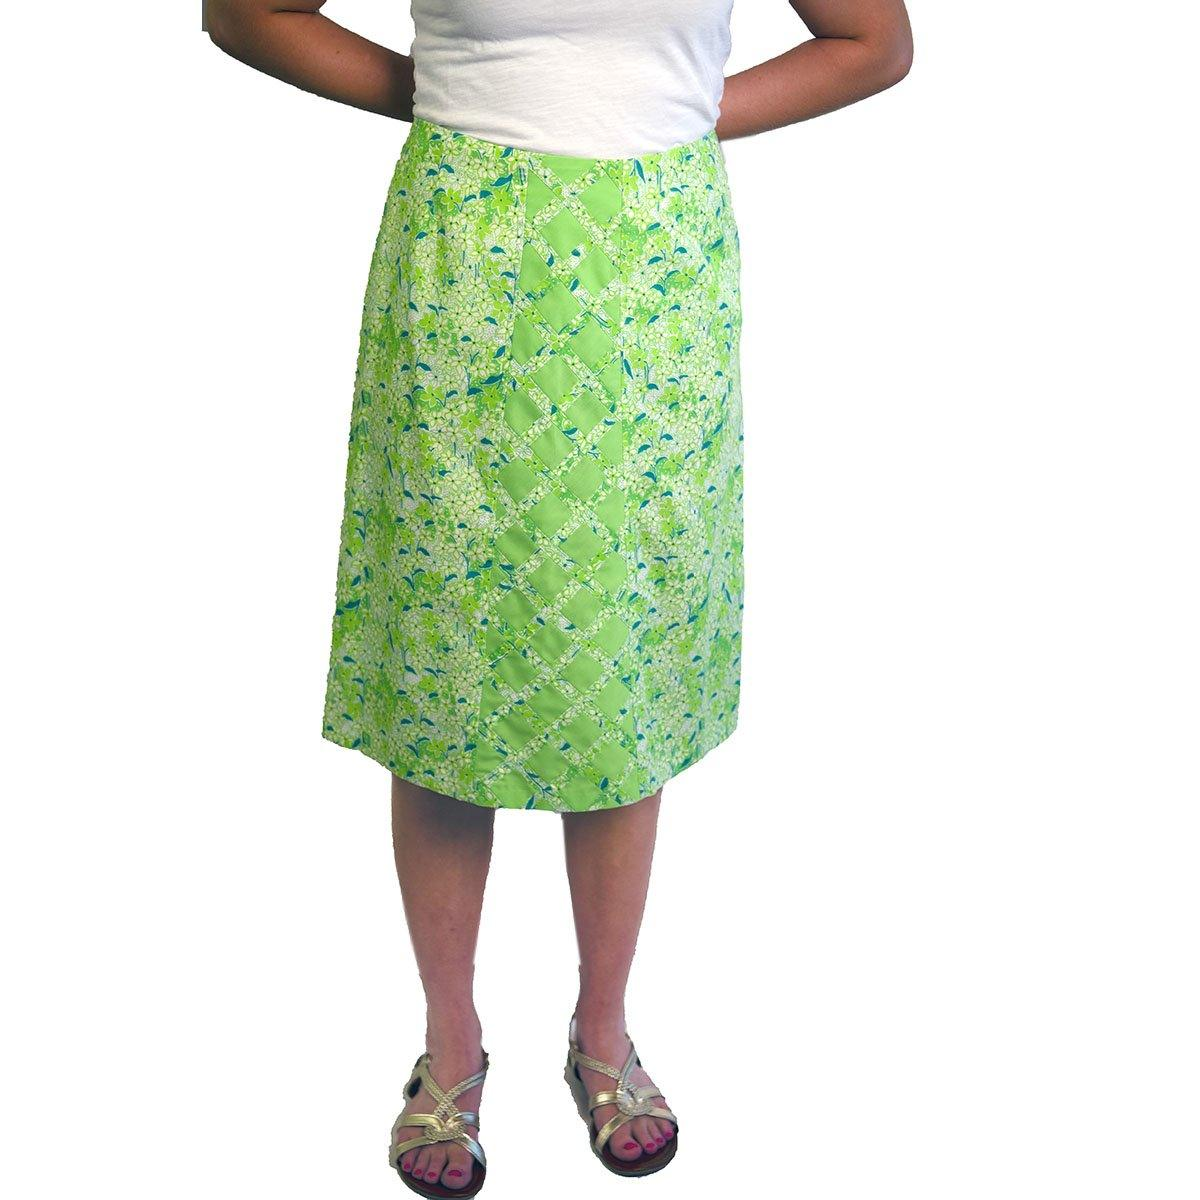 1970s Lilly Pulitzer, The Lilly Green Floral Skirt, Size Medium 3